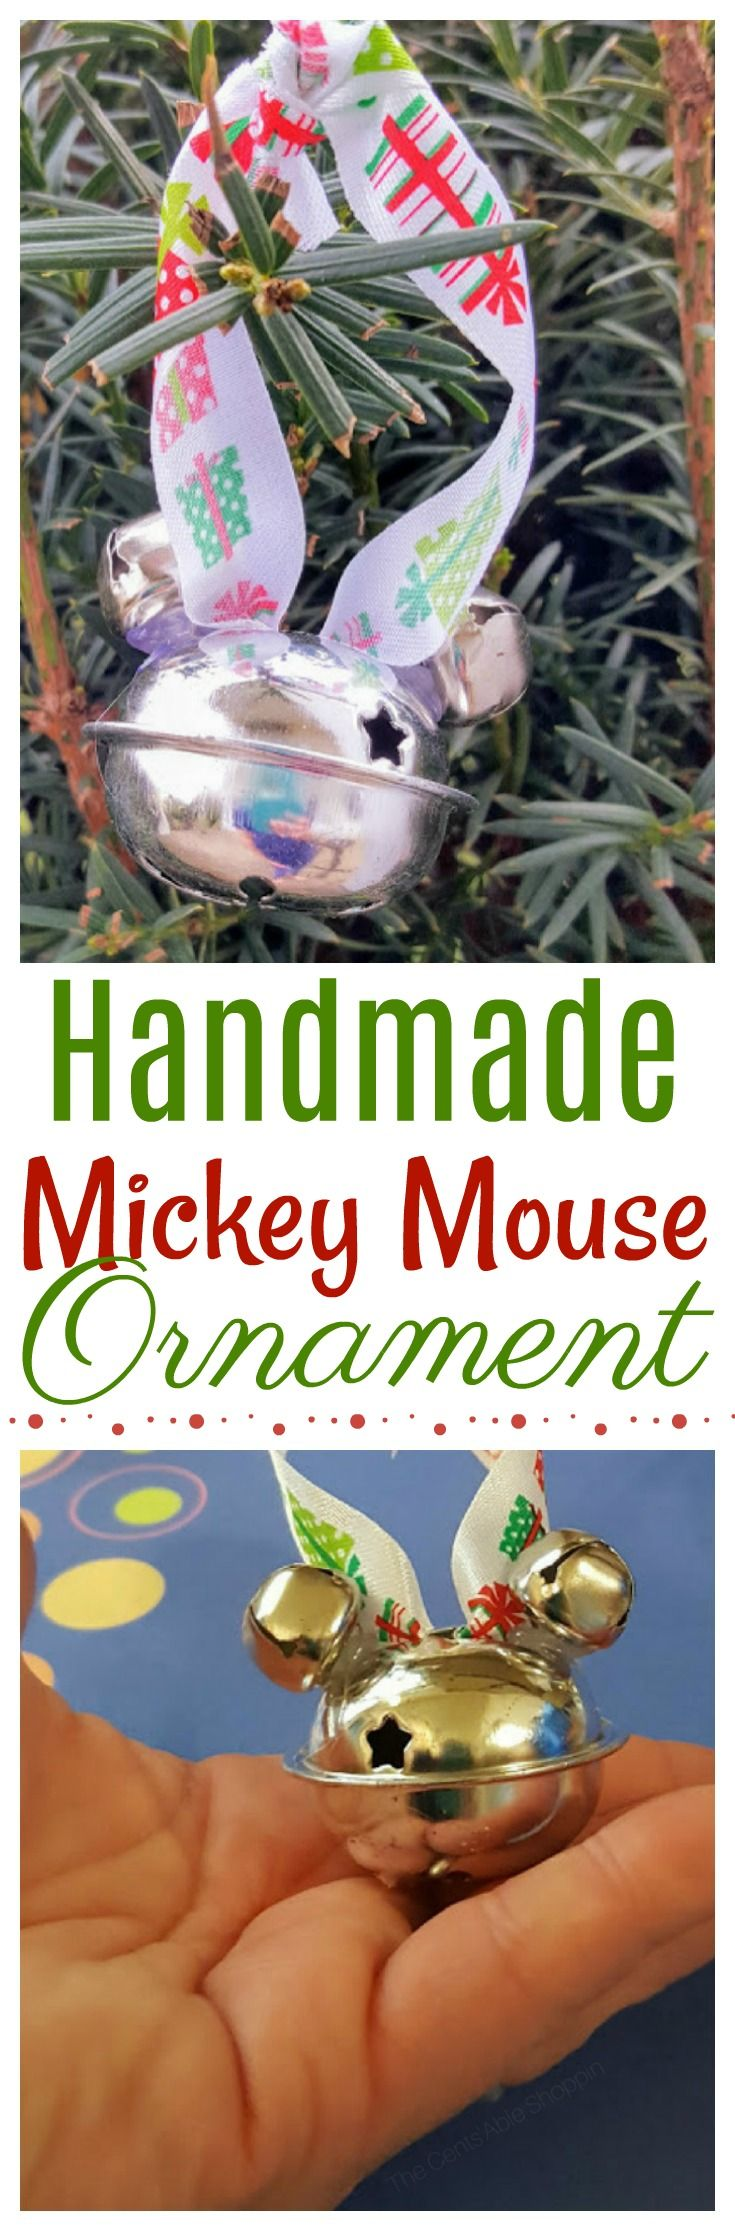 Christmas is near, and these Mickey Mouse Tree Ornaments are a super cute gift for the ultimate Minnie, or Mickey Mouse fan!   Whip up a dozen of these cute ornaments for less than $4!  #MickeyMouse #Christmas #Ornament #Craft